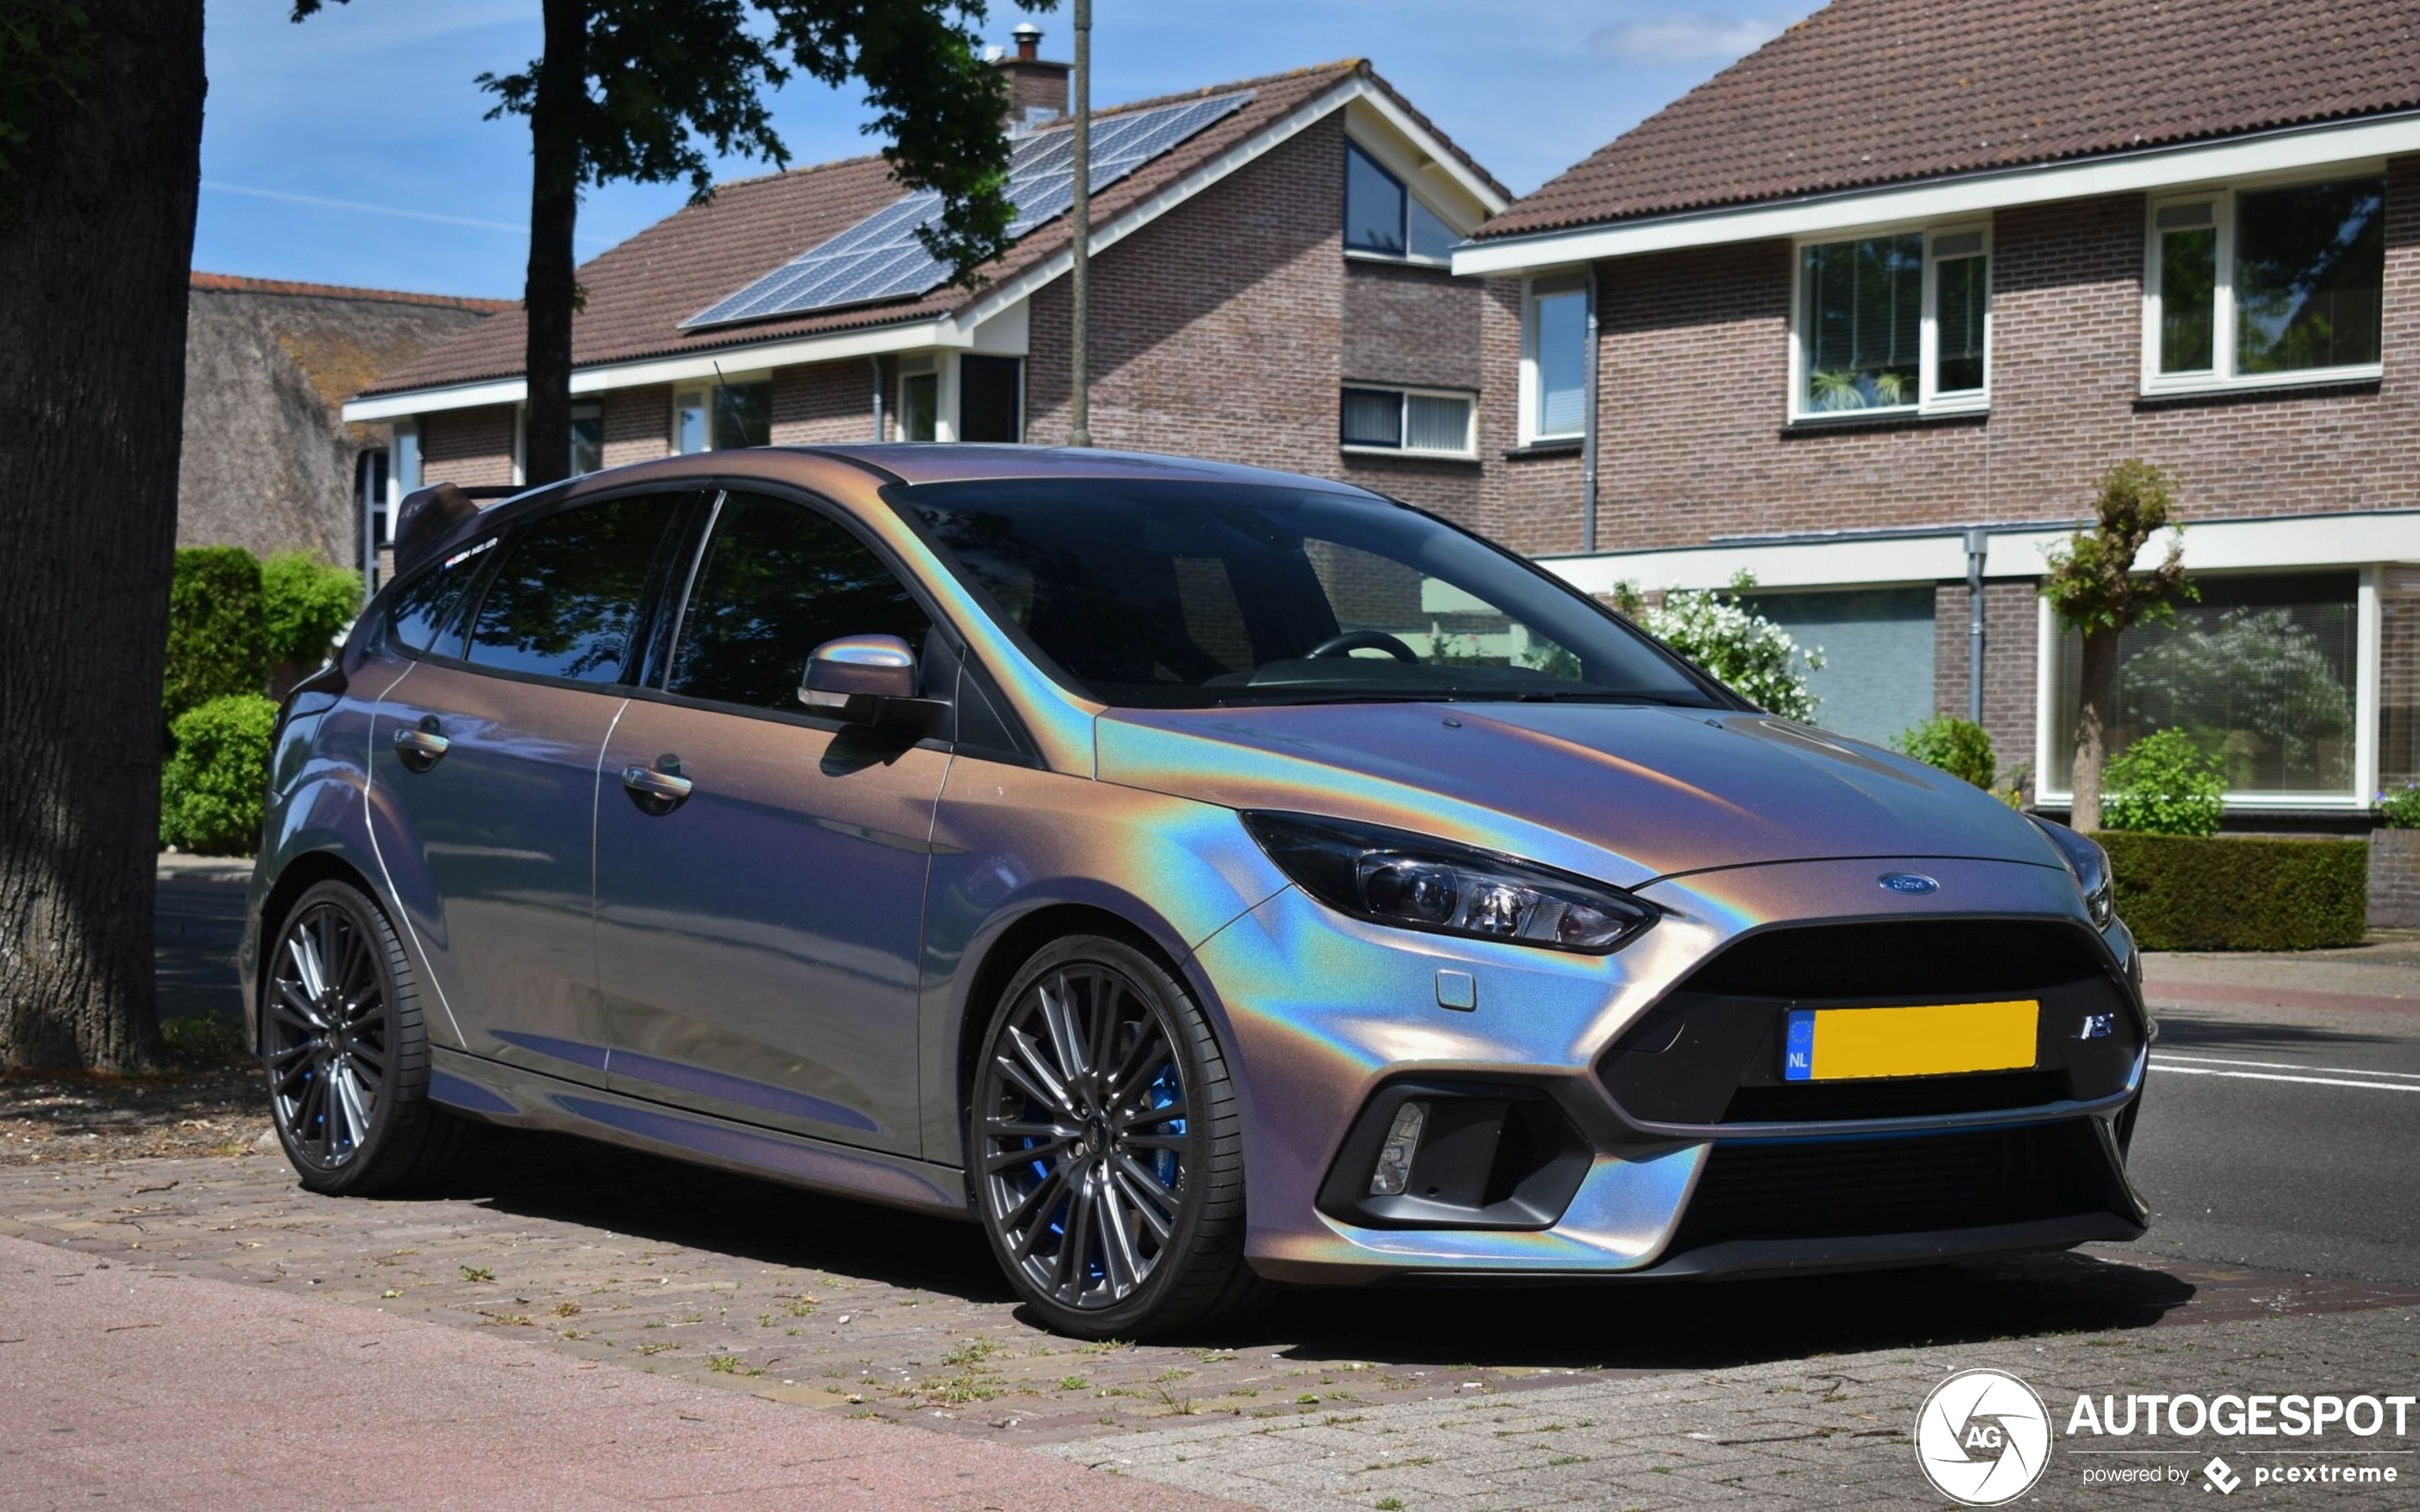 2020 Ford Focus RS Price, Design and Review